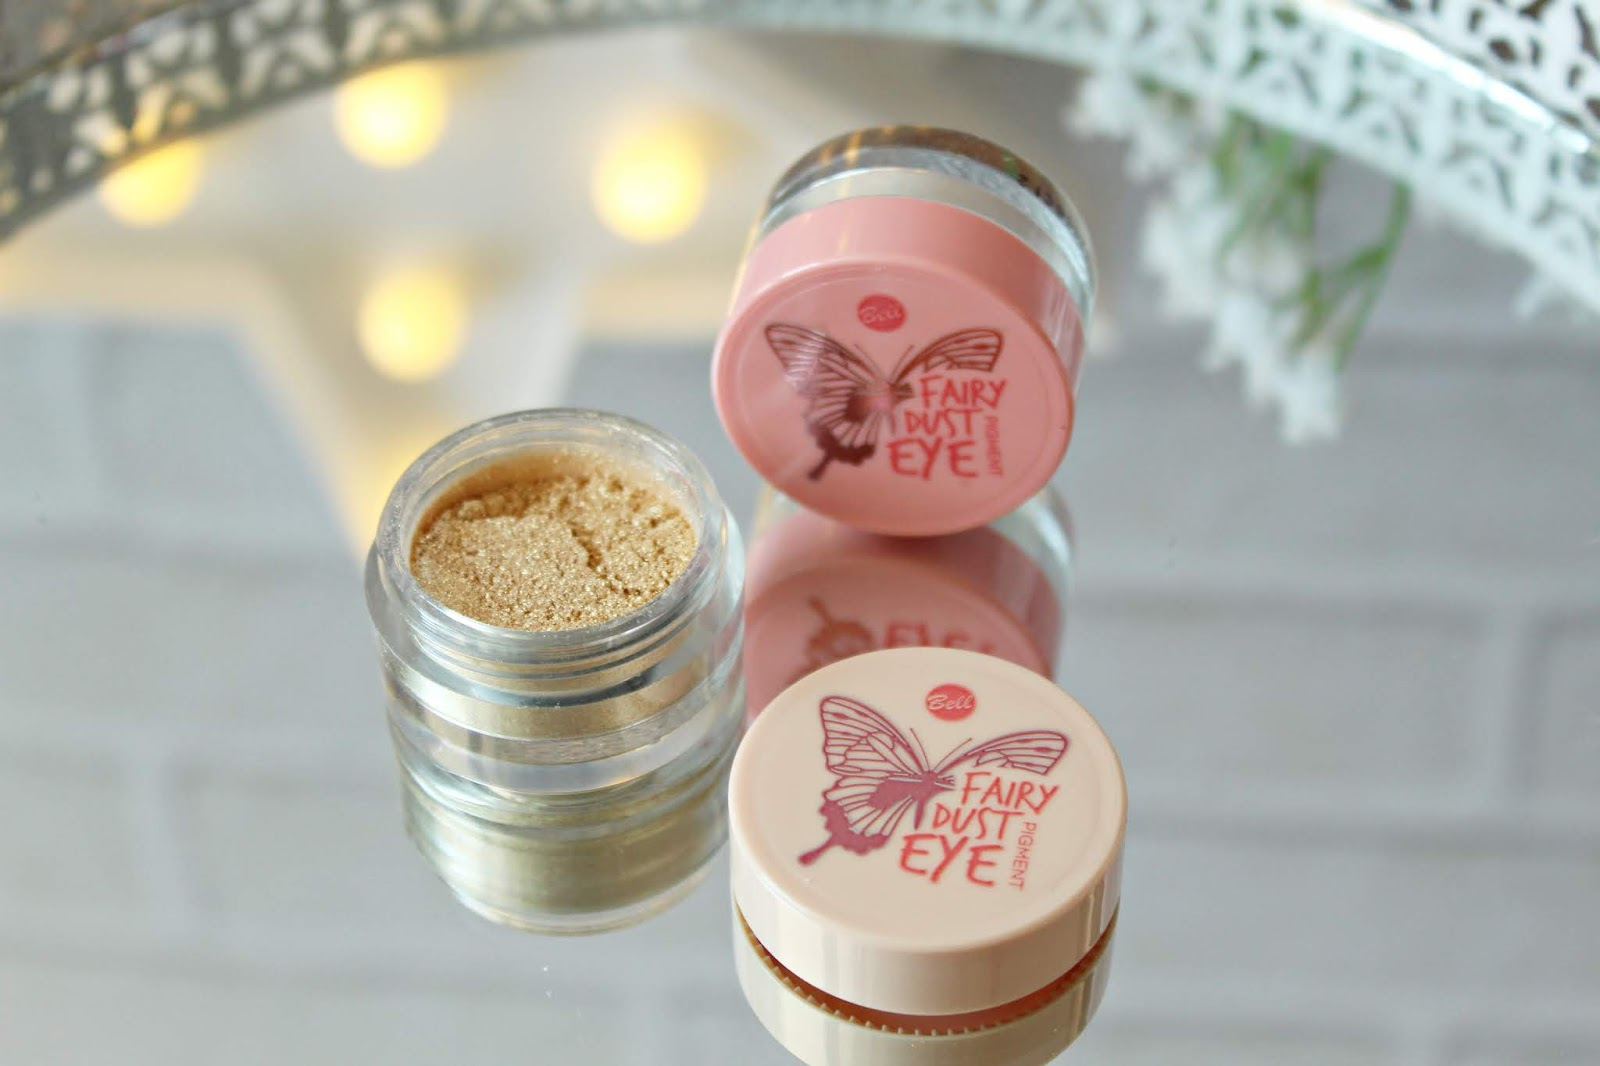 SYPKIE PIGMENTY DO OCZU Bell Fairy Tale FAIRY DUST EYE PIGMENT